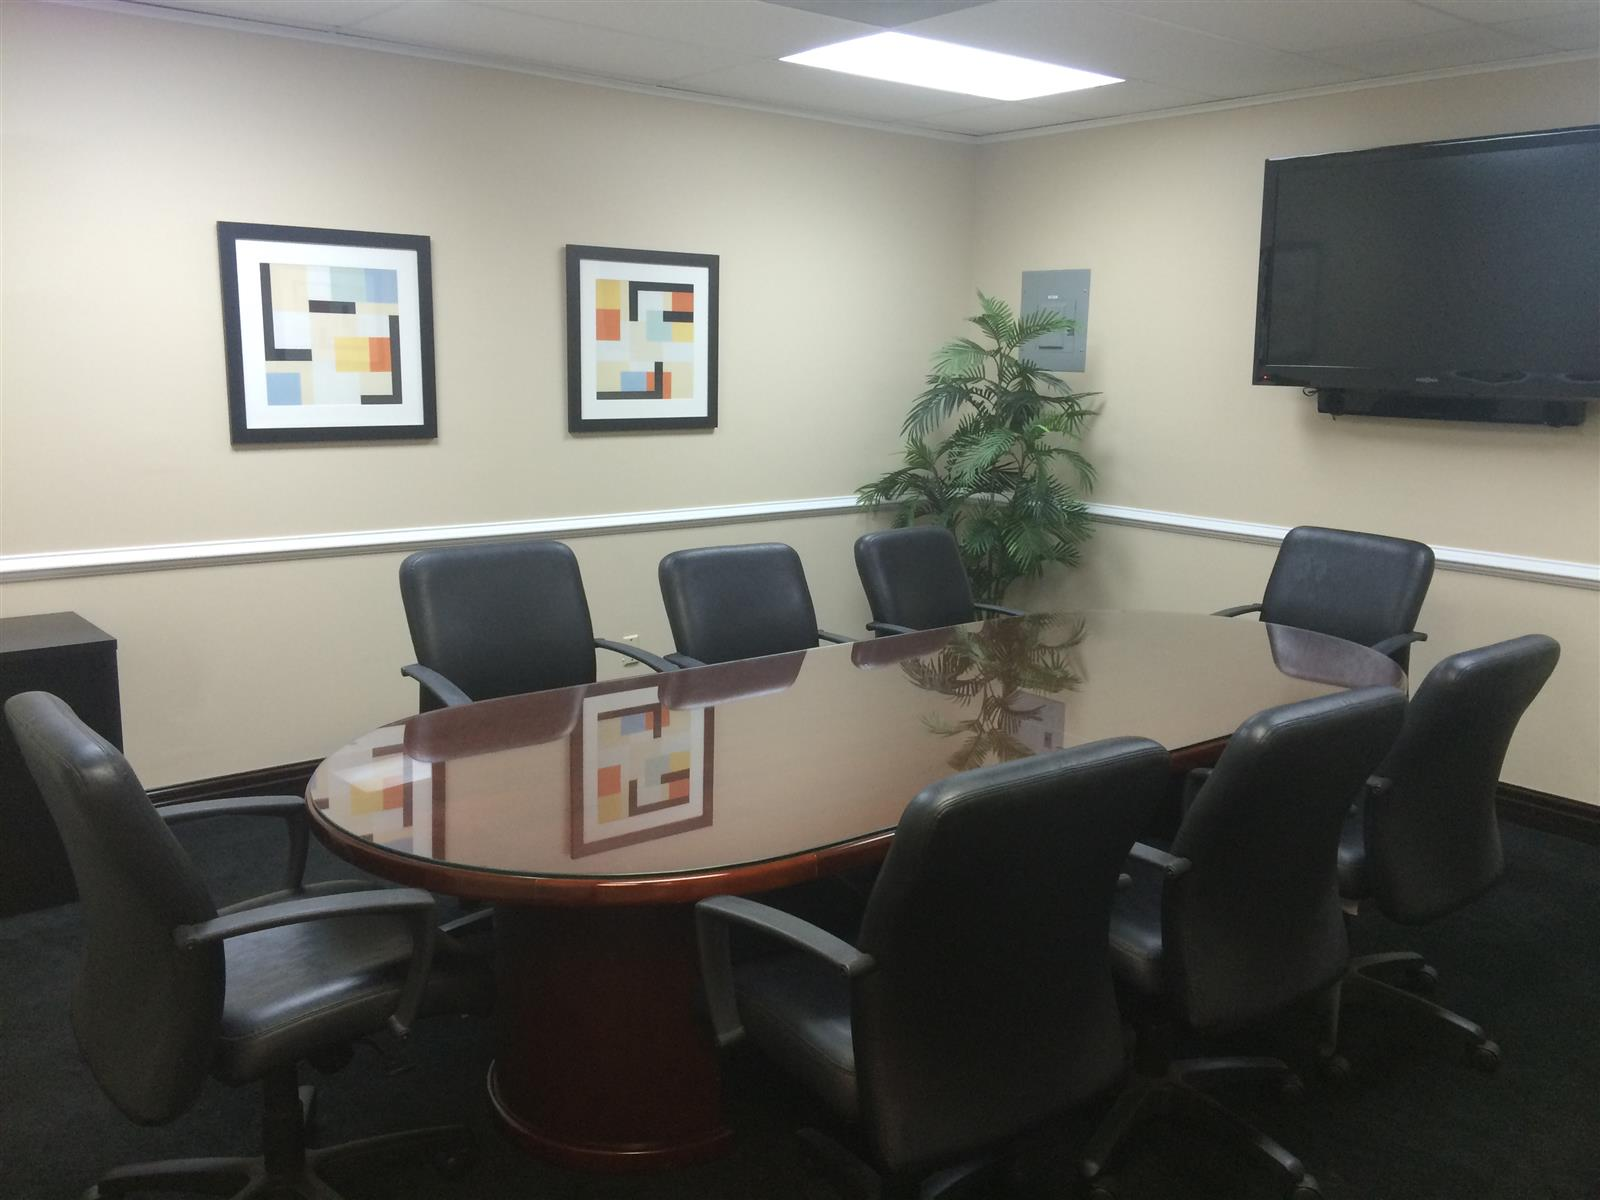 Capital Executive Suites - Court Reporting ConferenceRoom